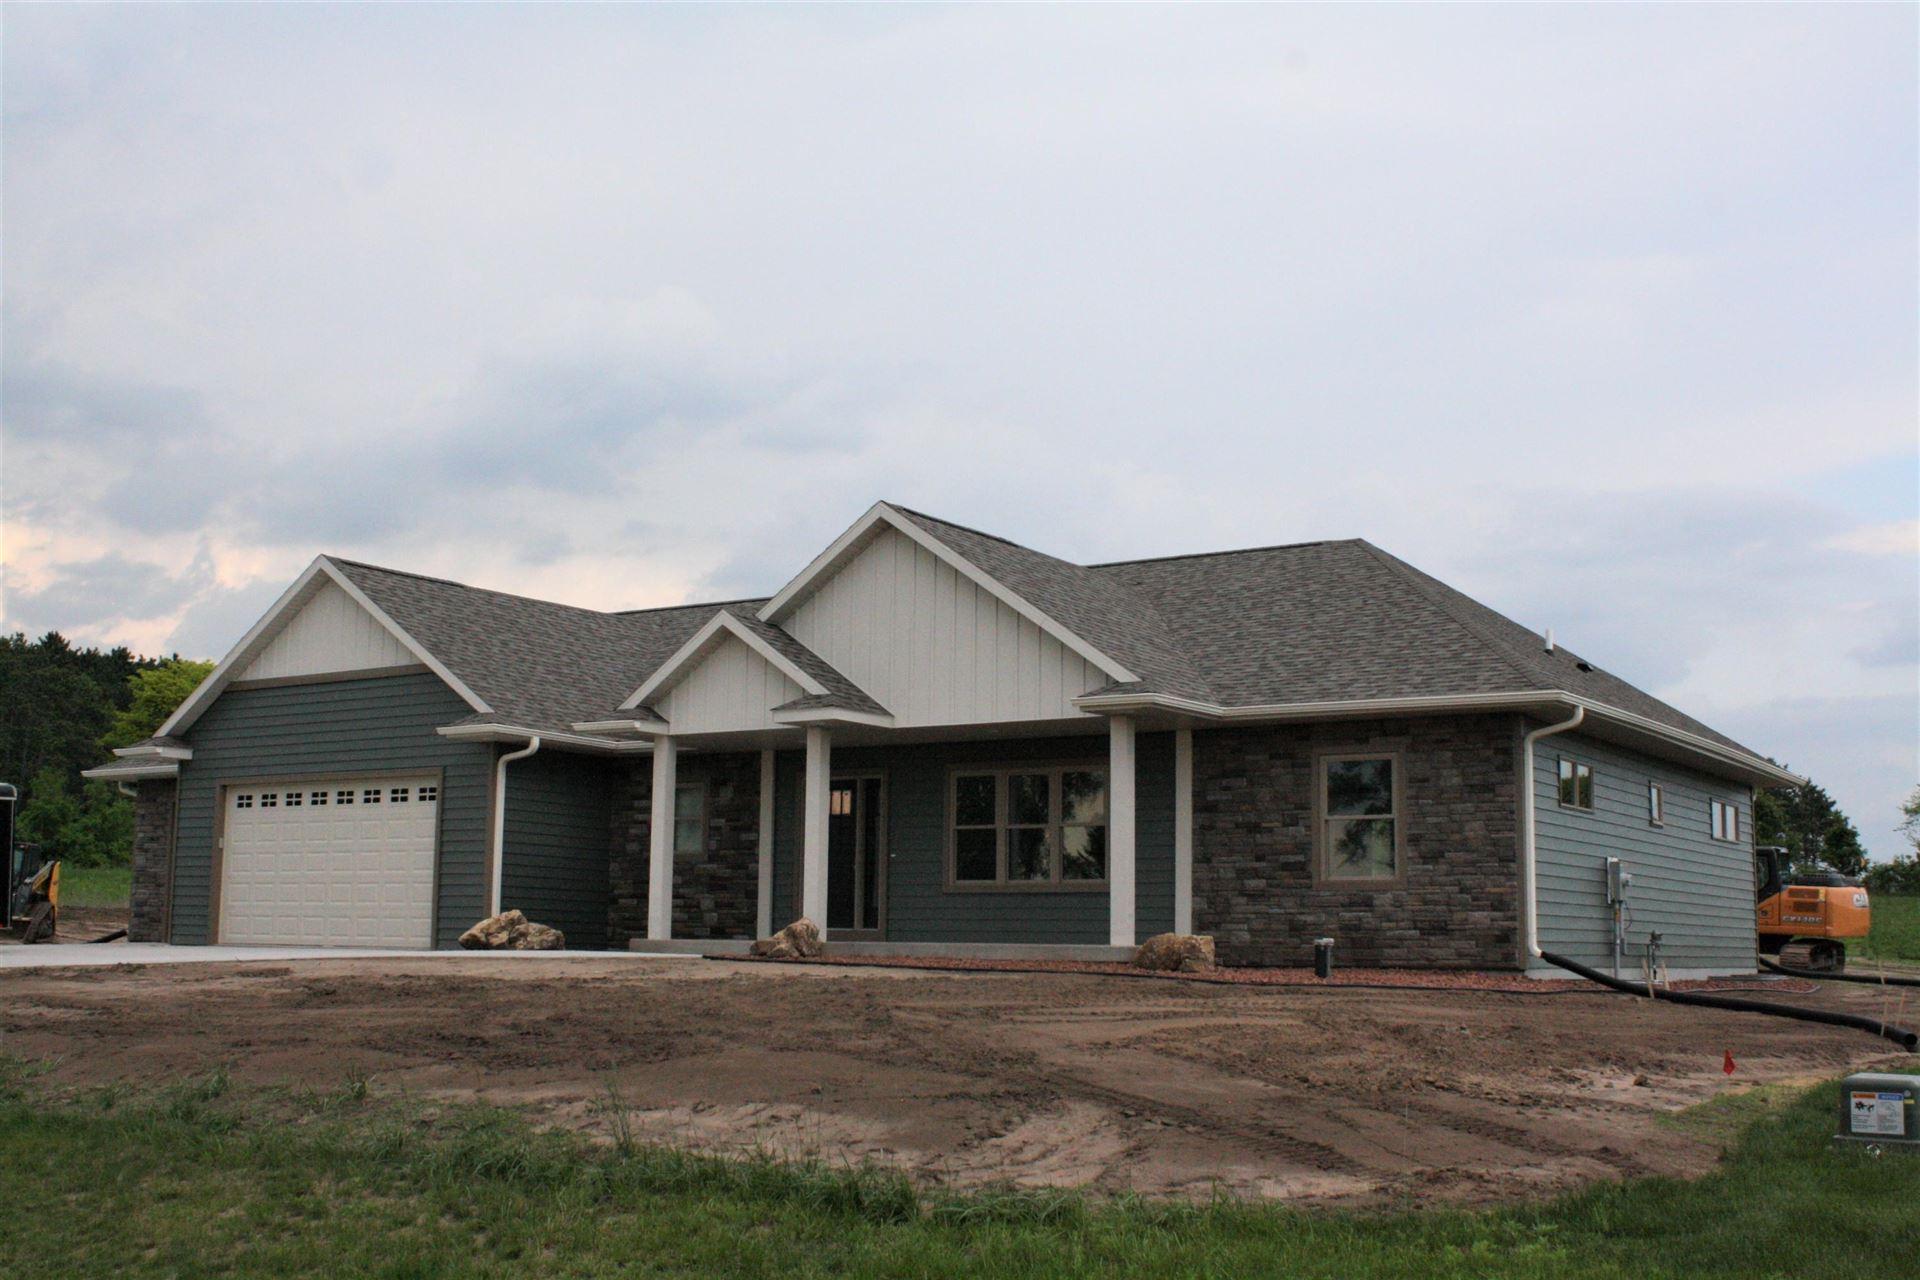 N6880 SAND PRAIRIE CT, Holland, WI 54636 - MLS#: 1691241